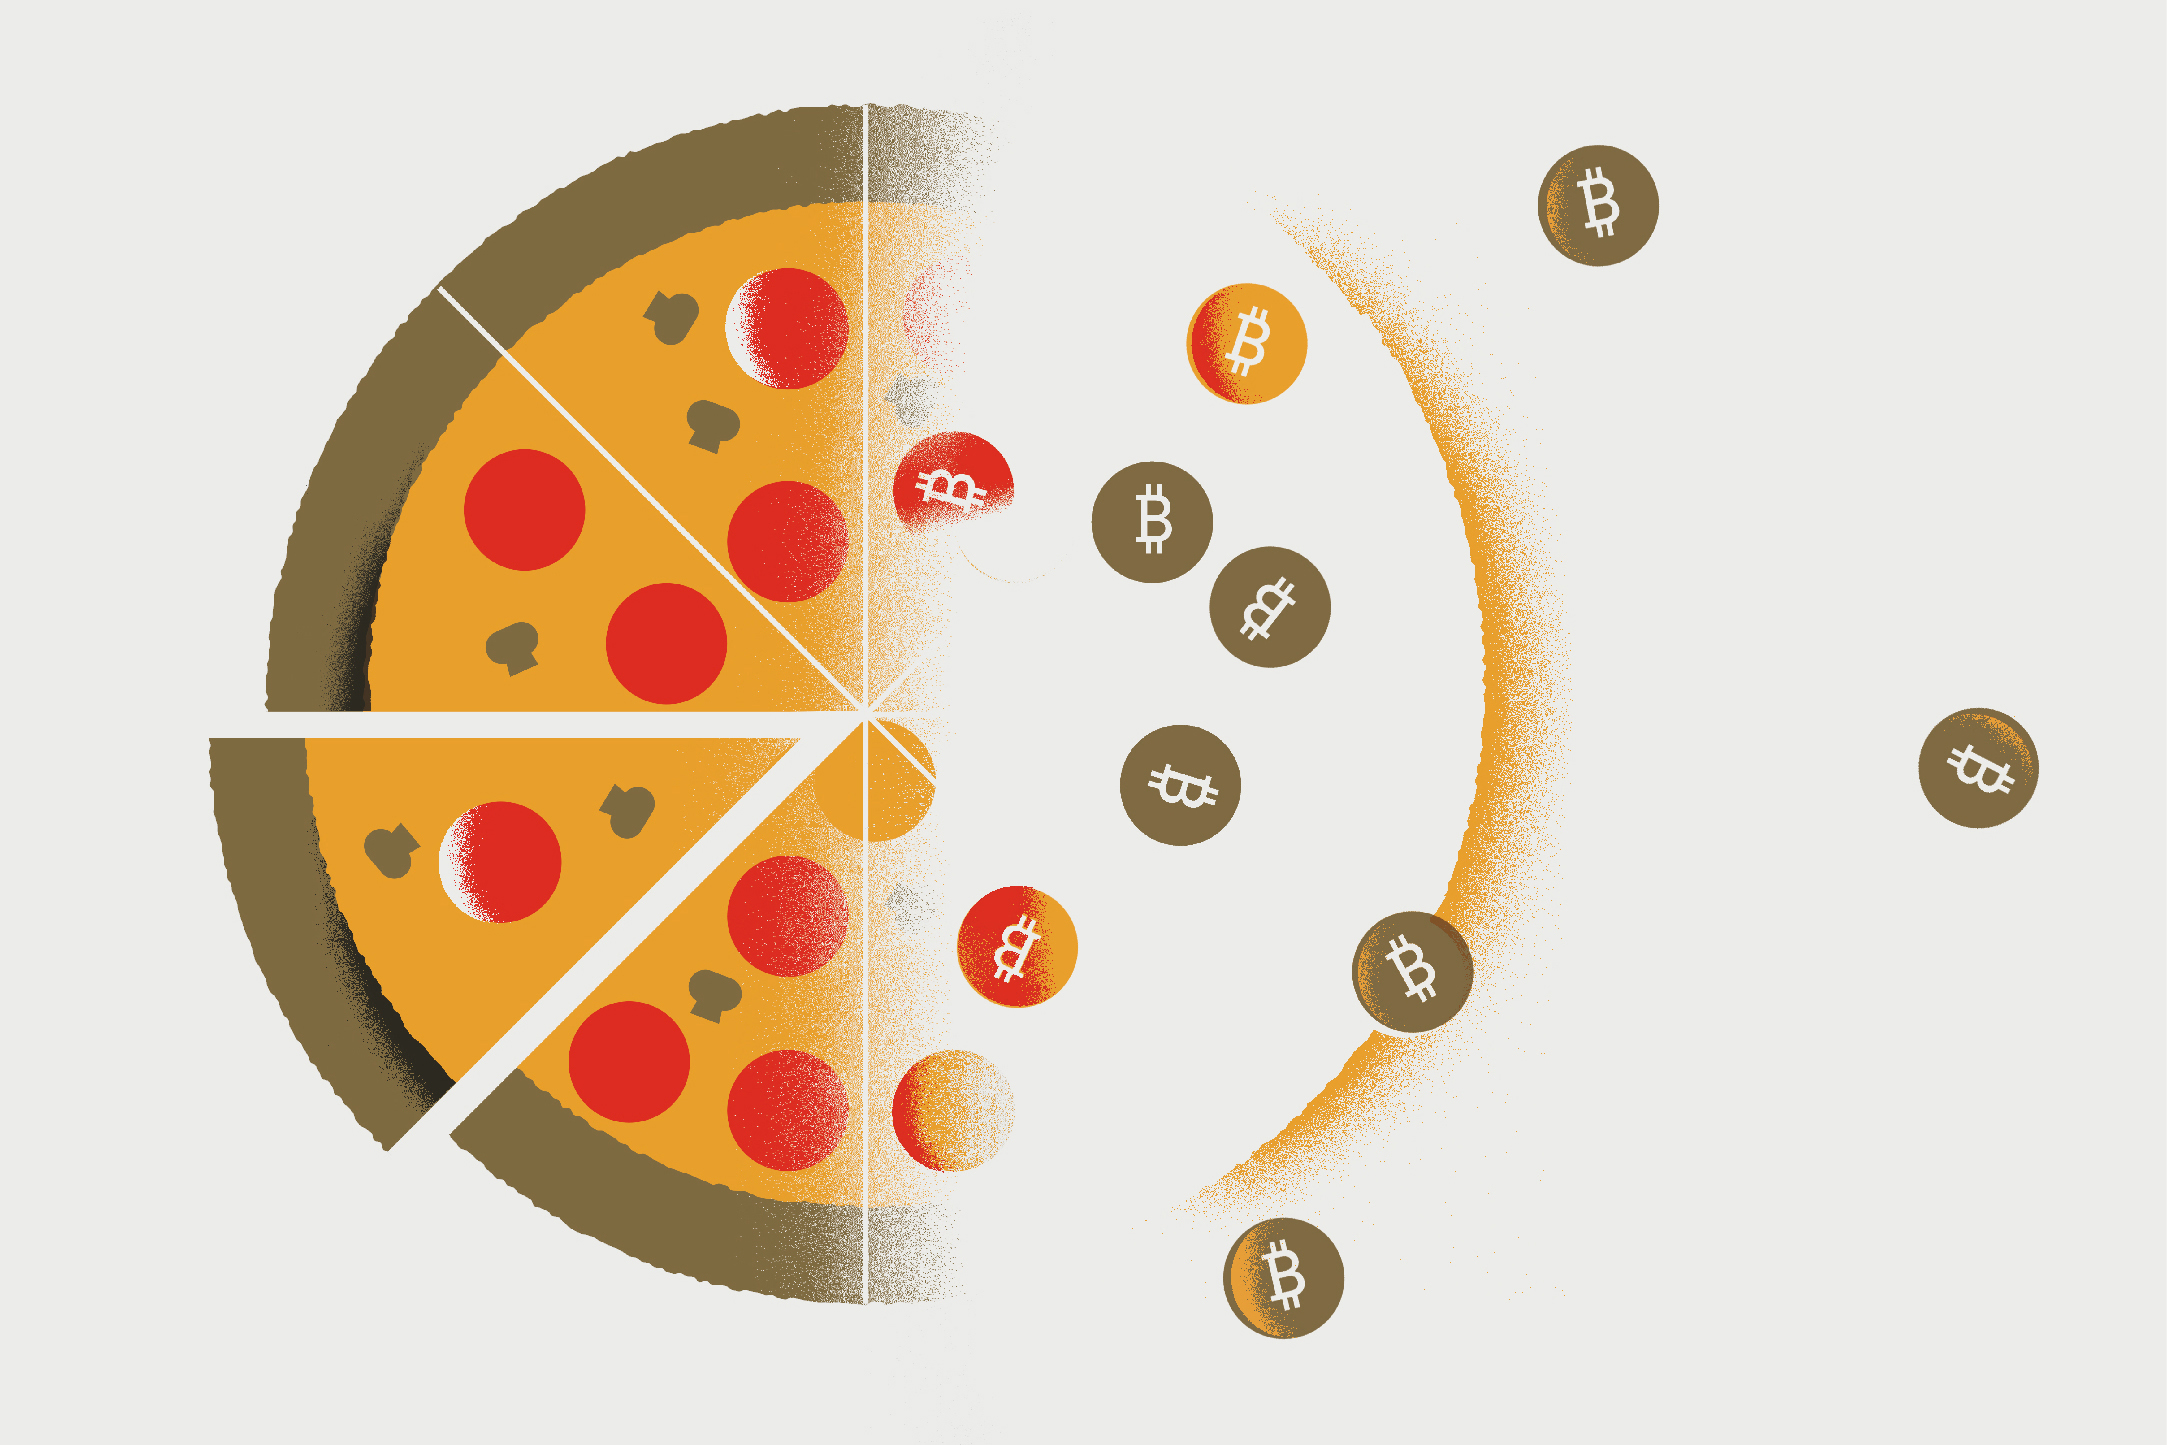 If you can understand pizza and poker, you can understand Bitcoin – and David Noble believes you should. (Illustration by Andrew Colin Beck for UConn)